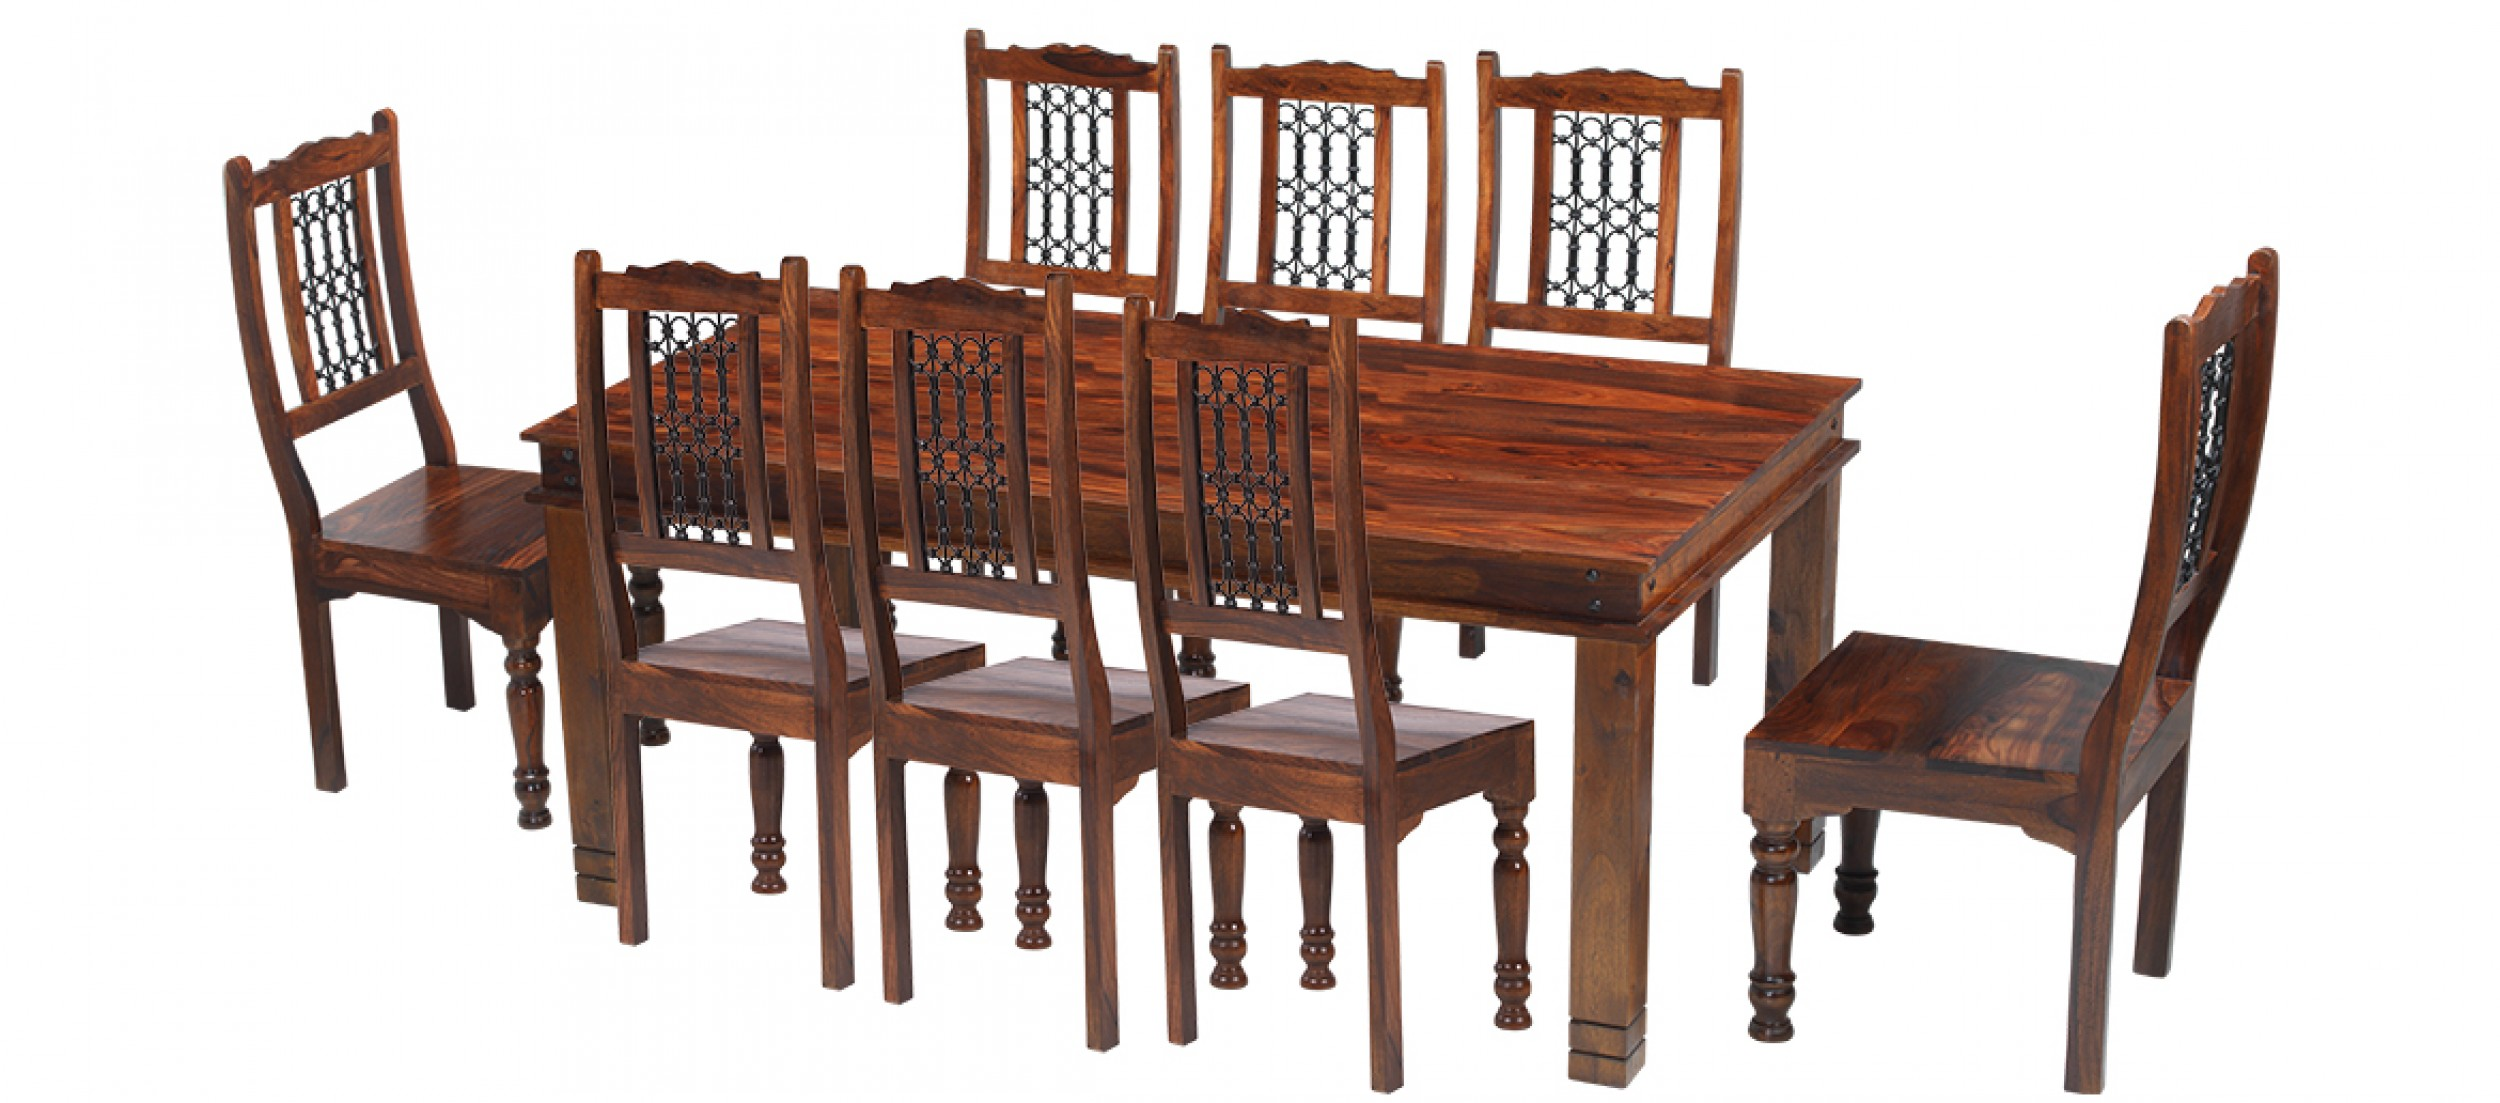 Jali Sheesham 200 cm Chunky Dining Table and 8 Chairs  : jali sheesham chunky dining table set sh 20 set 8 angle from quercusliving.co.uk size 2500 x 1103 jpeg 347kB